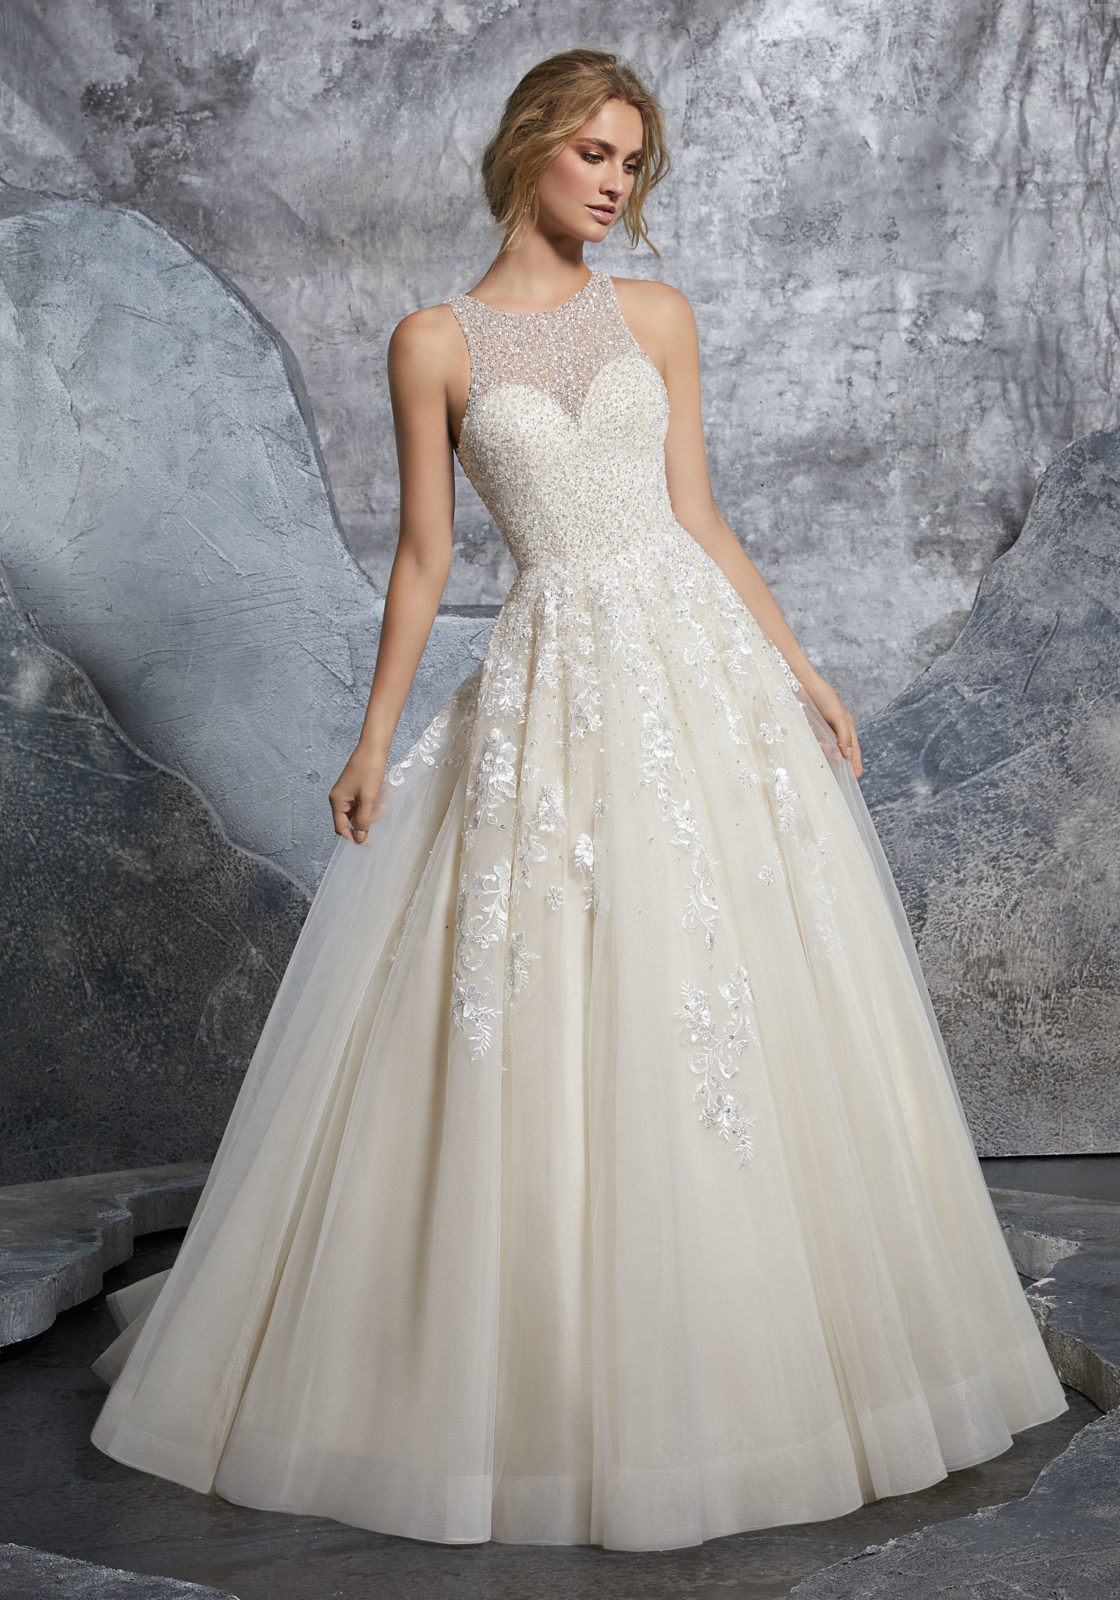 China Princess Bridal Gown Beaded Appliqued Cream Tulle Beach